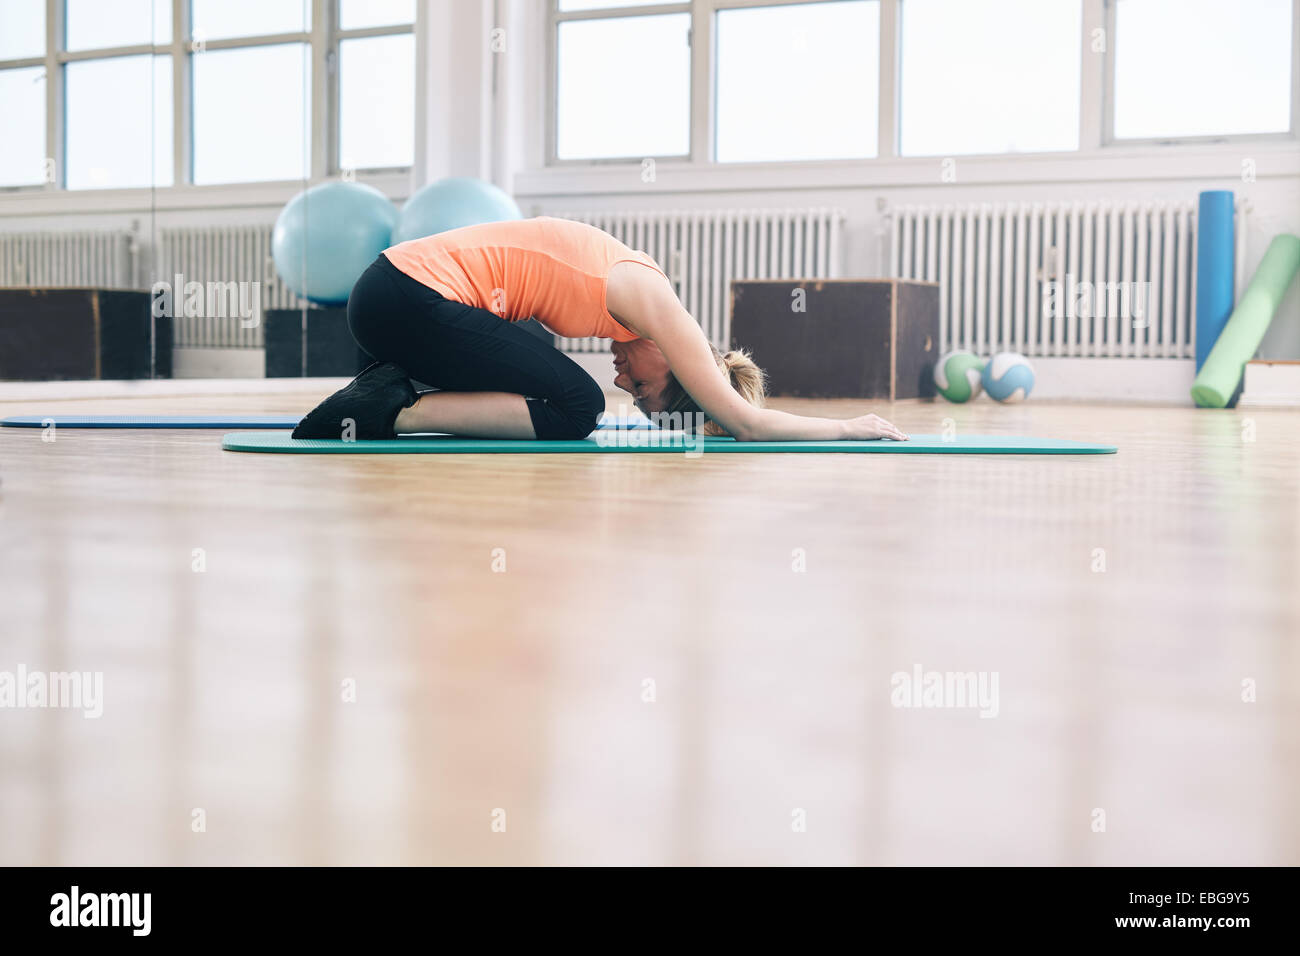 Portrait of woman doing a forward bend yoga exercise. Fitness woman practicing yoga at gym. Balasana - Child pose. - Stock Image